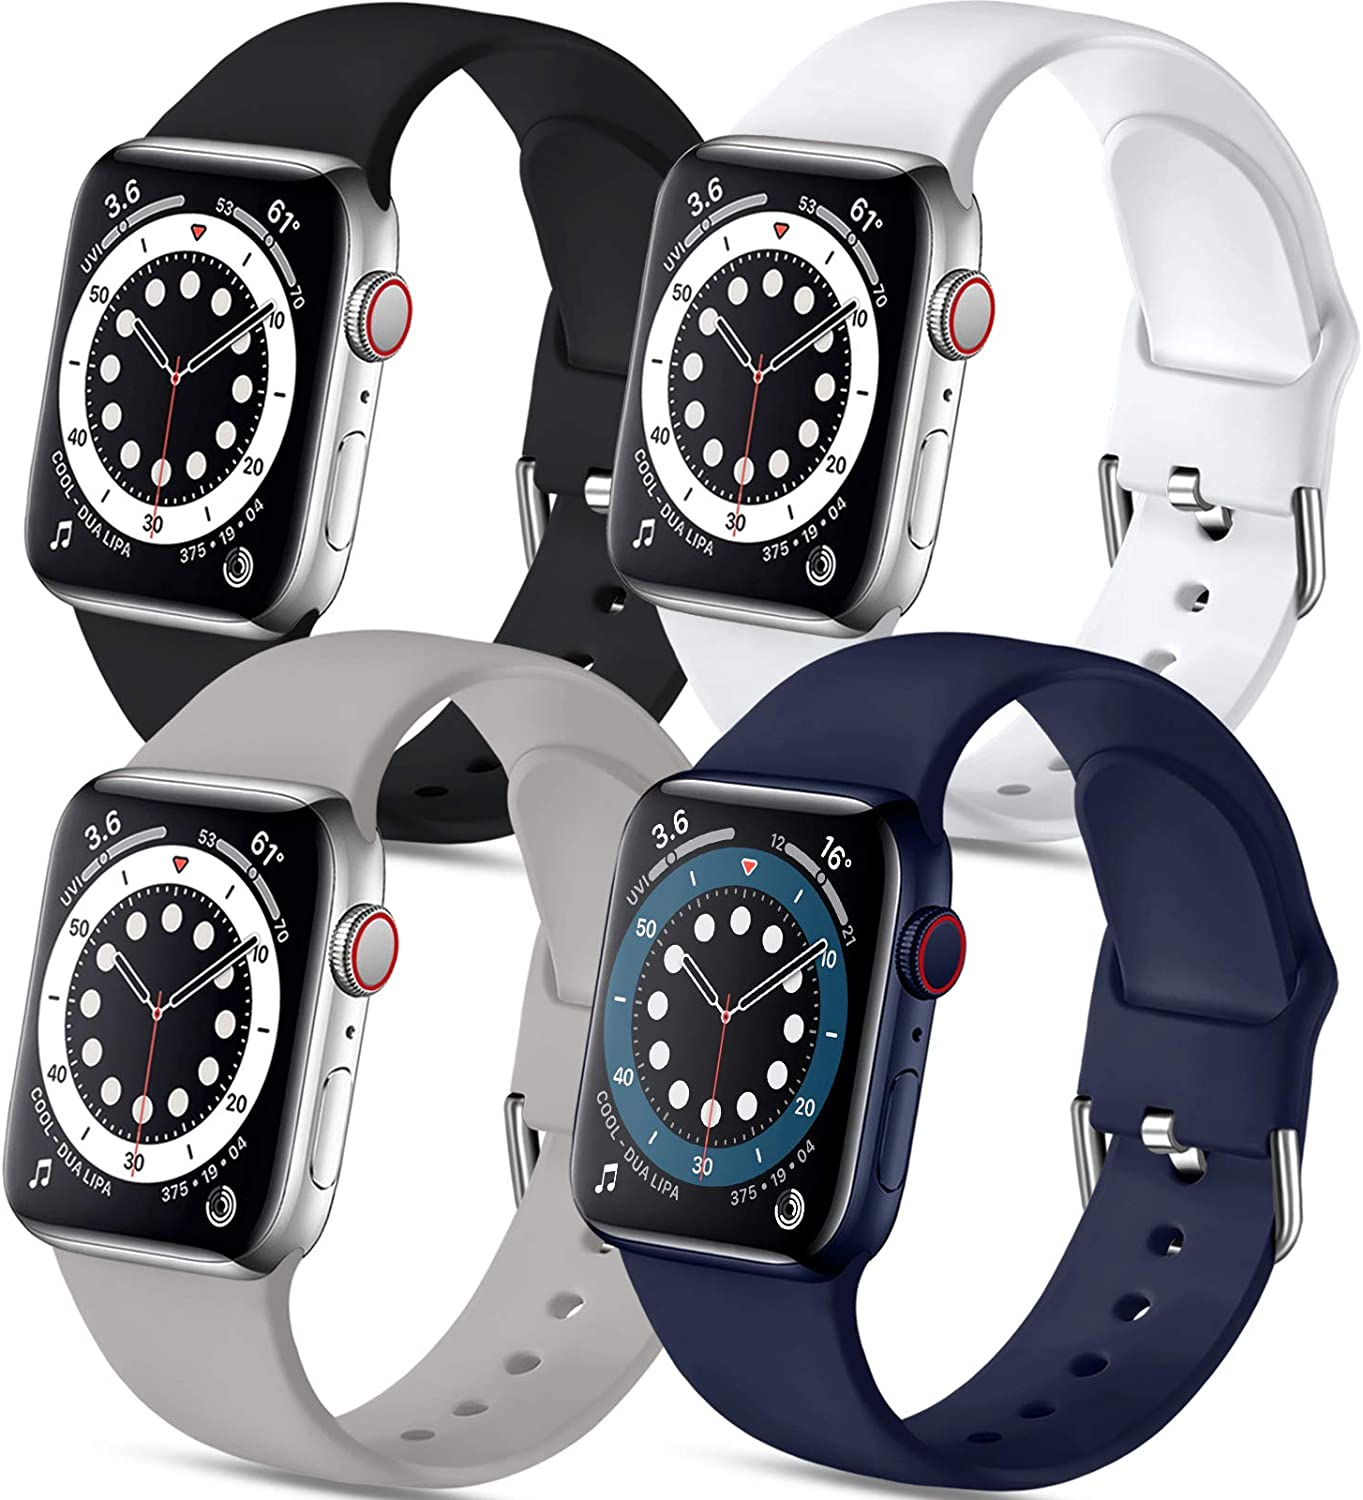 Muranne 4 Pack Sport Bands Compatible with Apple Watch Band 44mm 42mm iWatch SE & Series 6 & Series 5 4 3 2 1 for Women Men, Black Gray Midnight Blue White, M/L